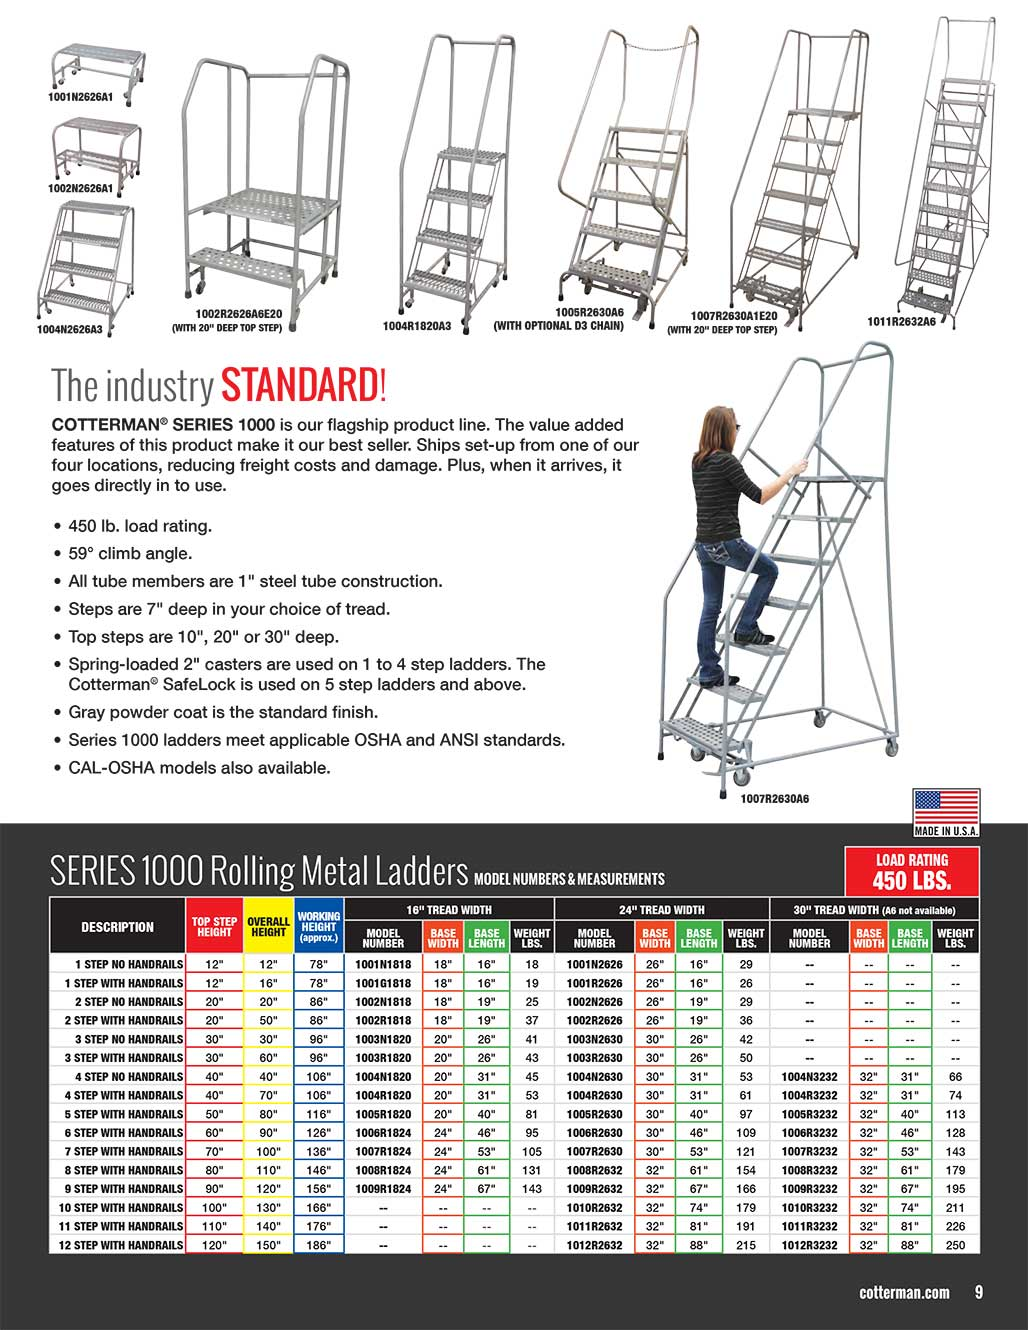 Cotterman Series 1000 Rolling Ladder Technical Specs